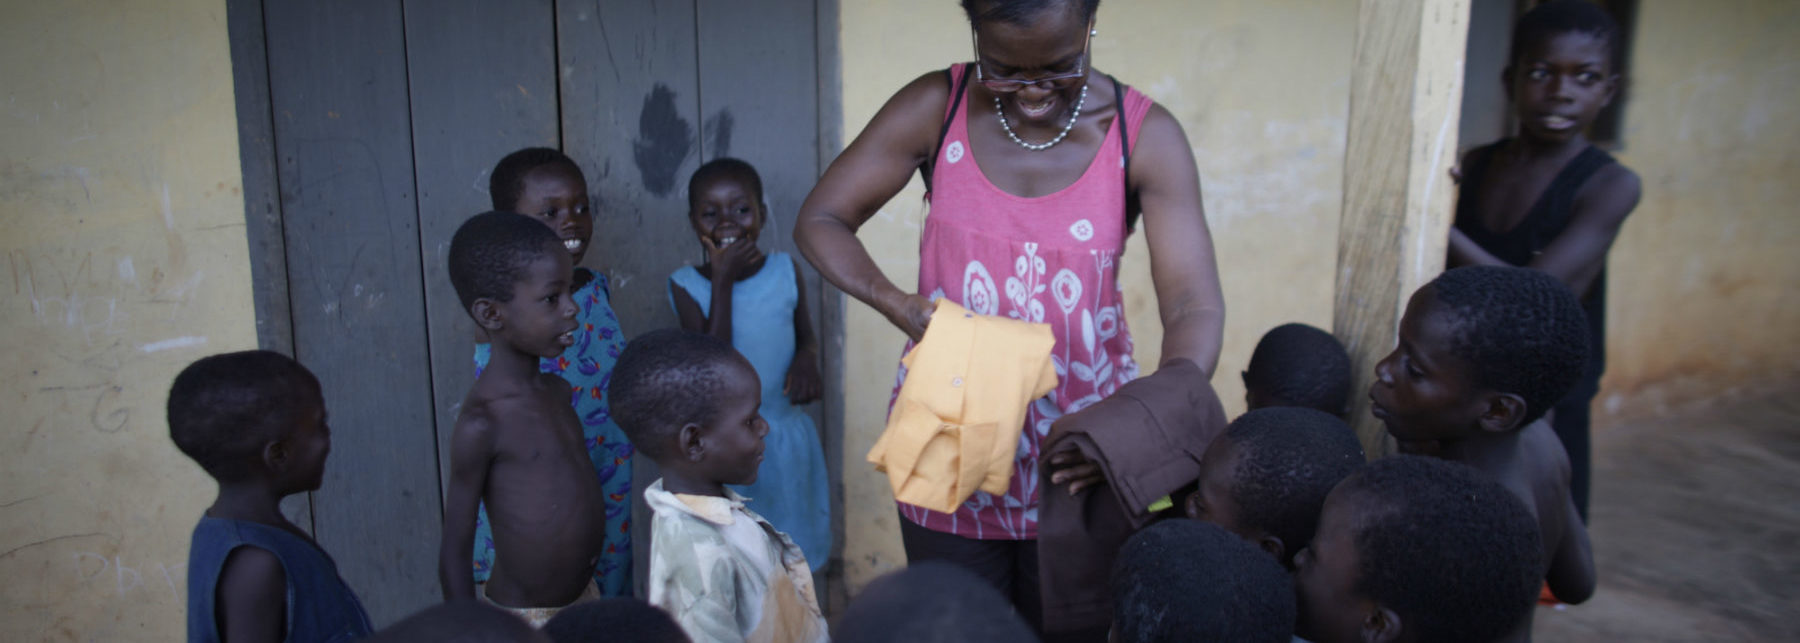 Akosua giving school uniform to children